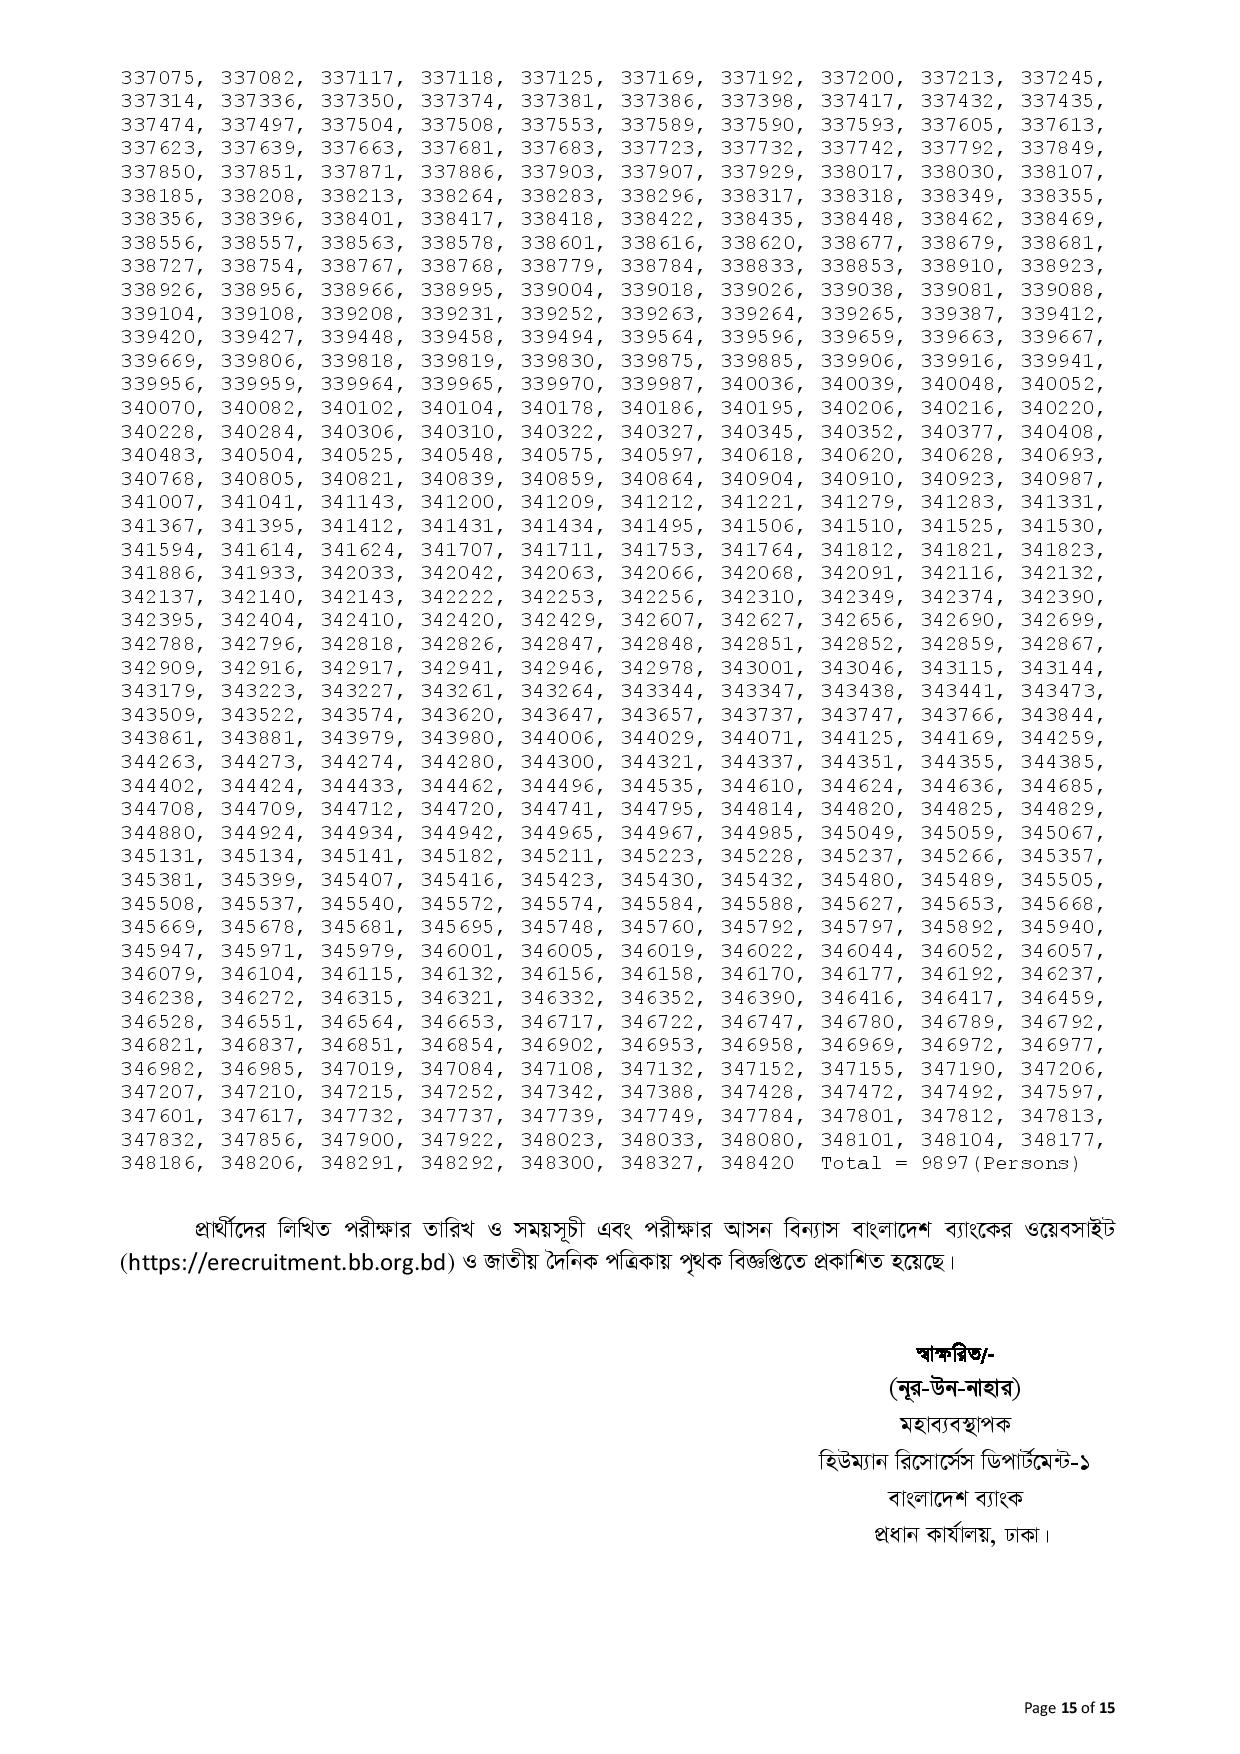 Bangladesh Bank (BB) Officer (General) Final Viva Result